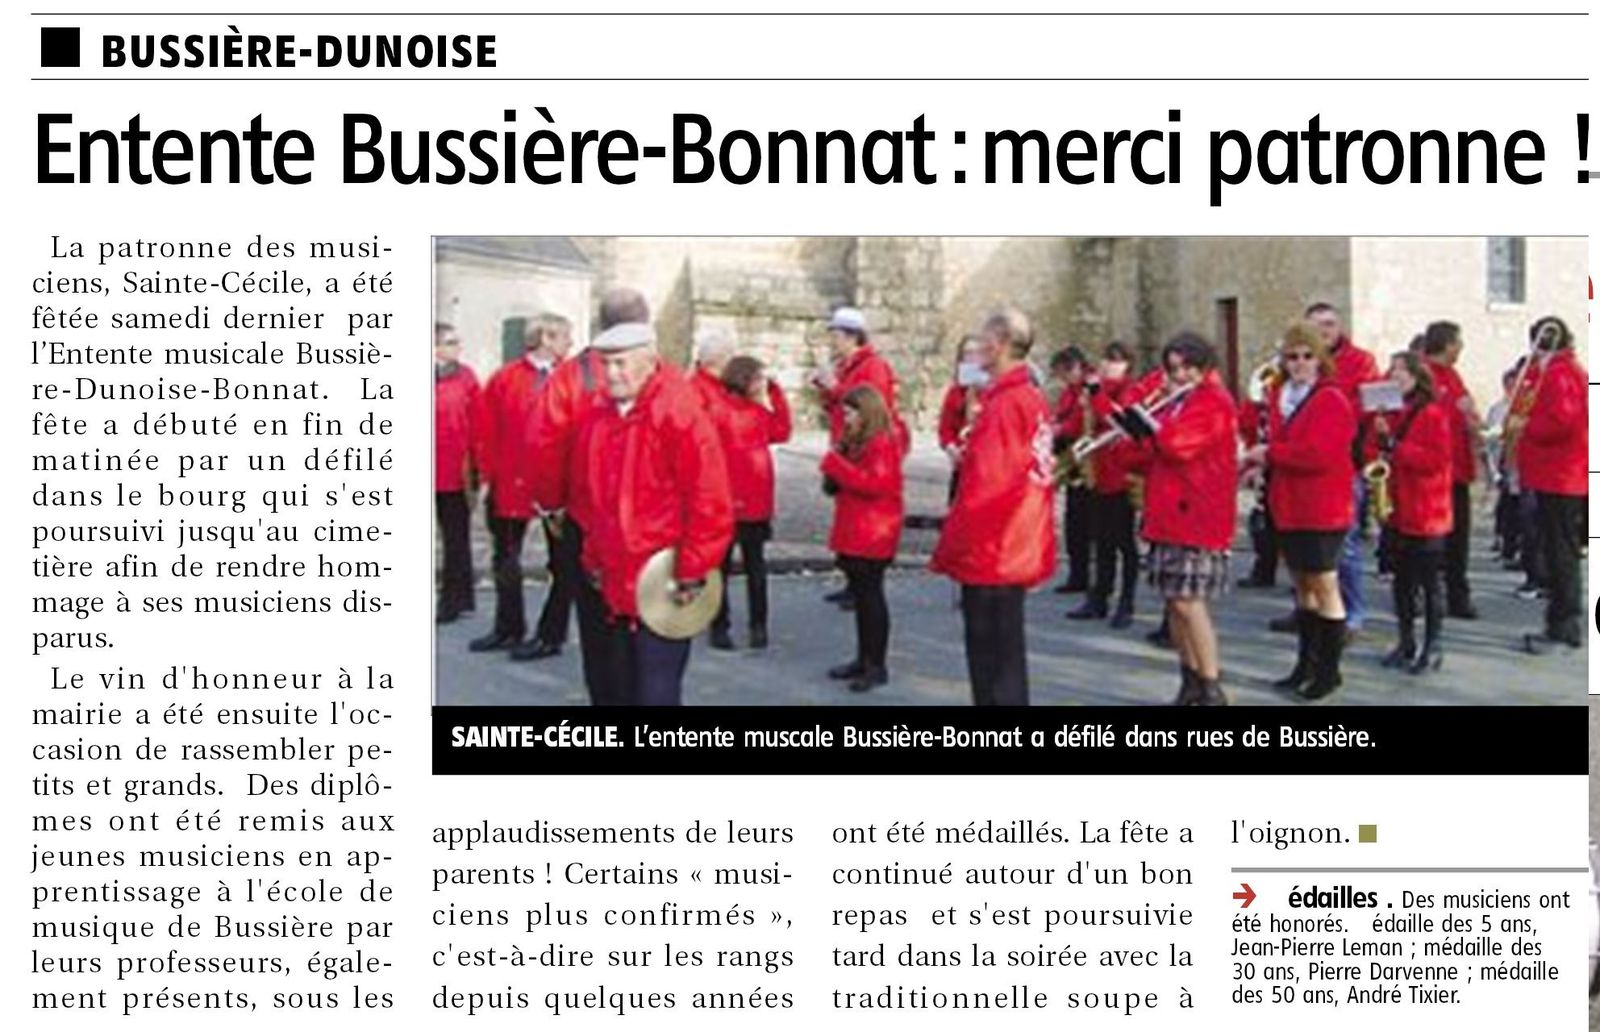 BUSSIERE-DUNOISE: